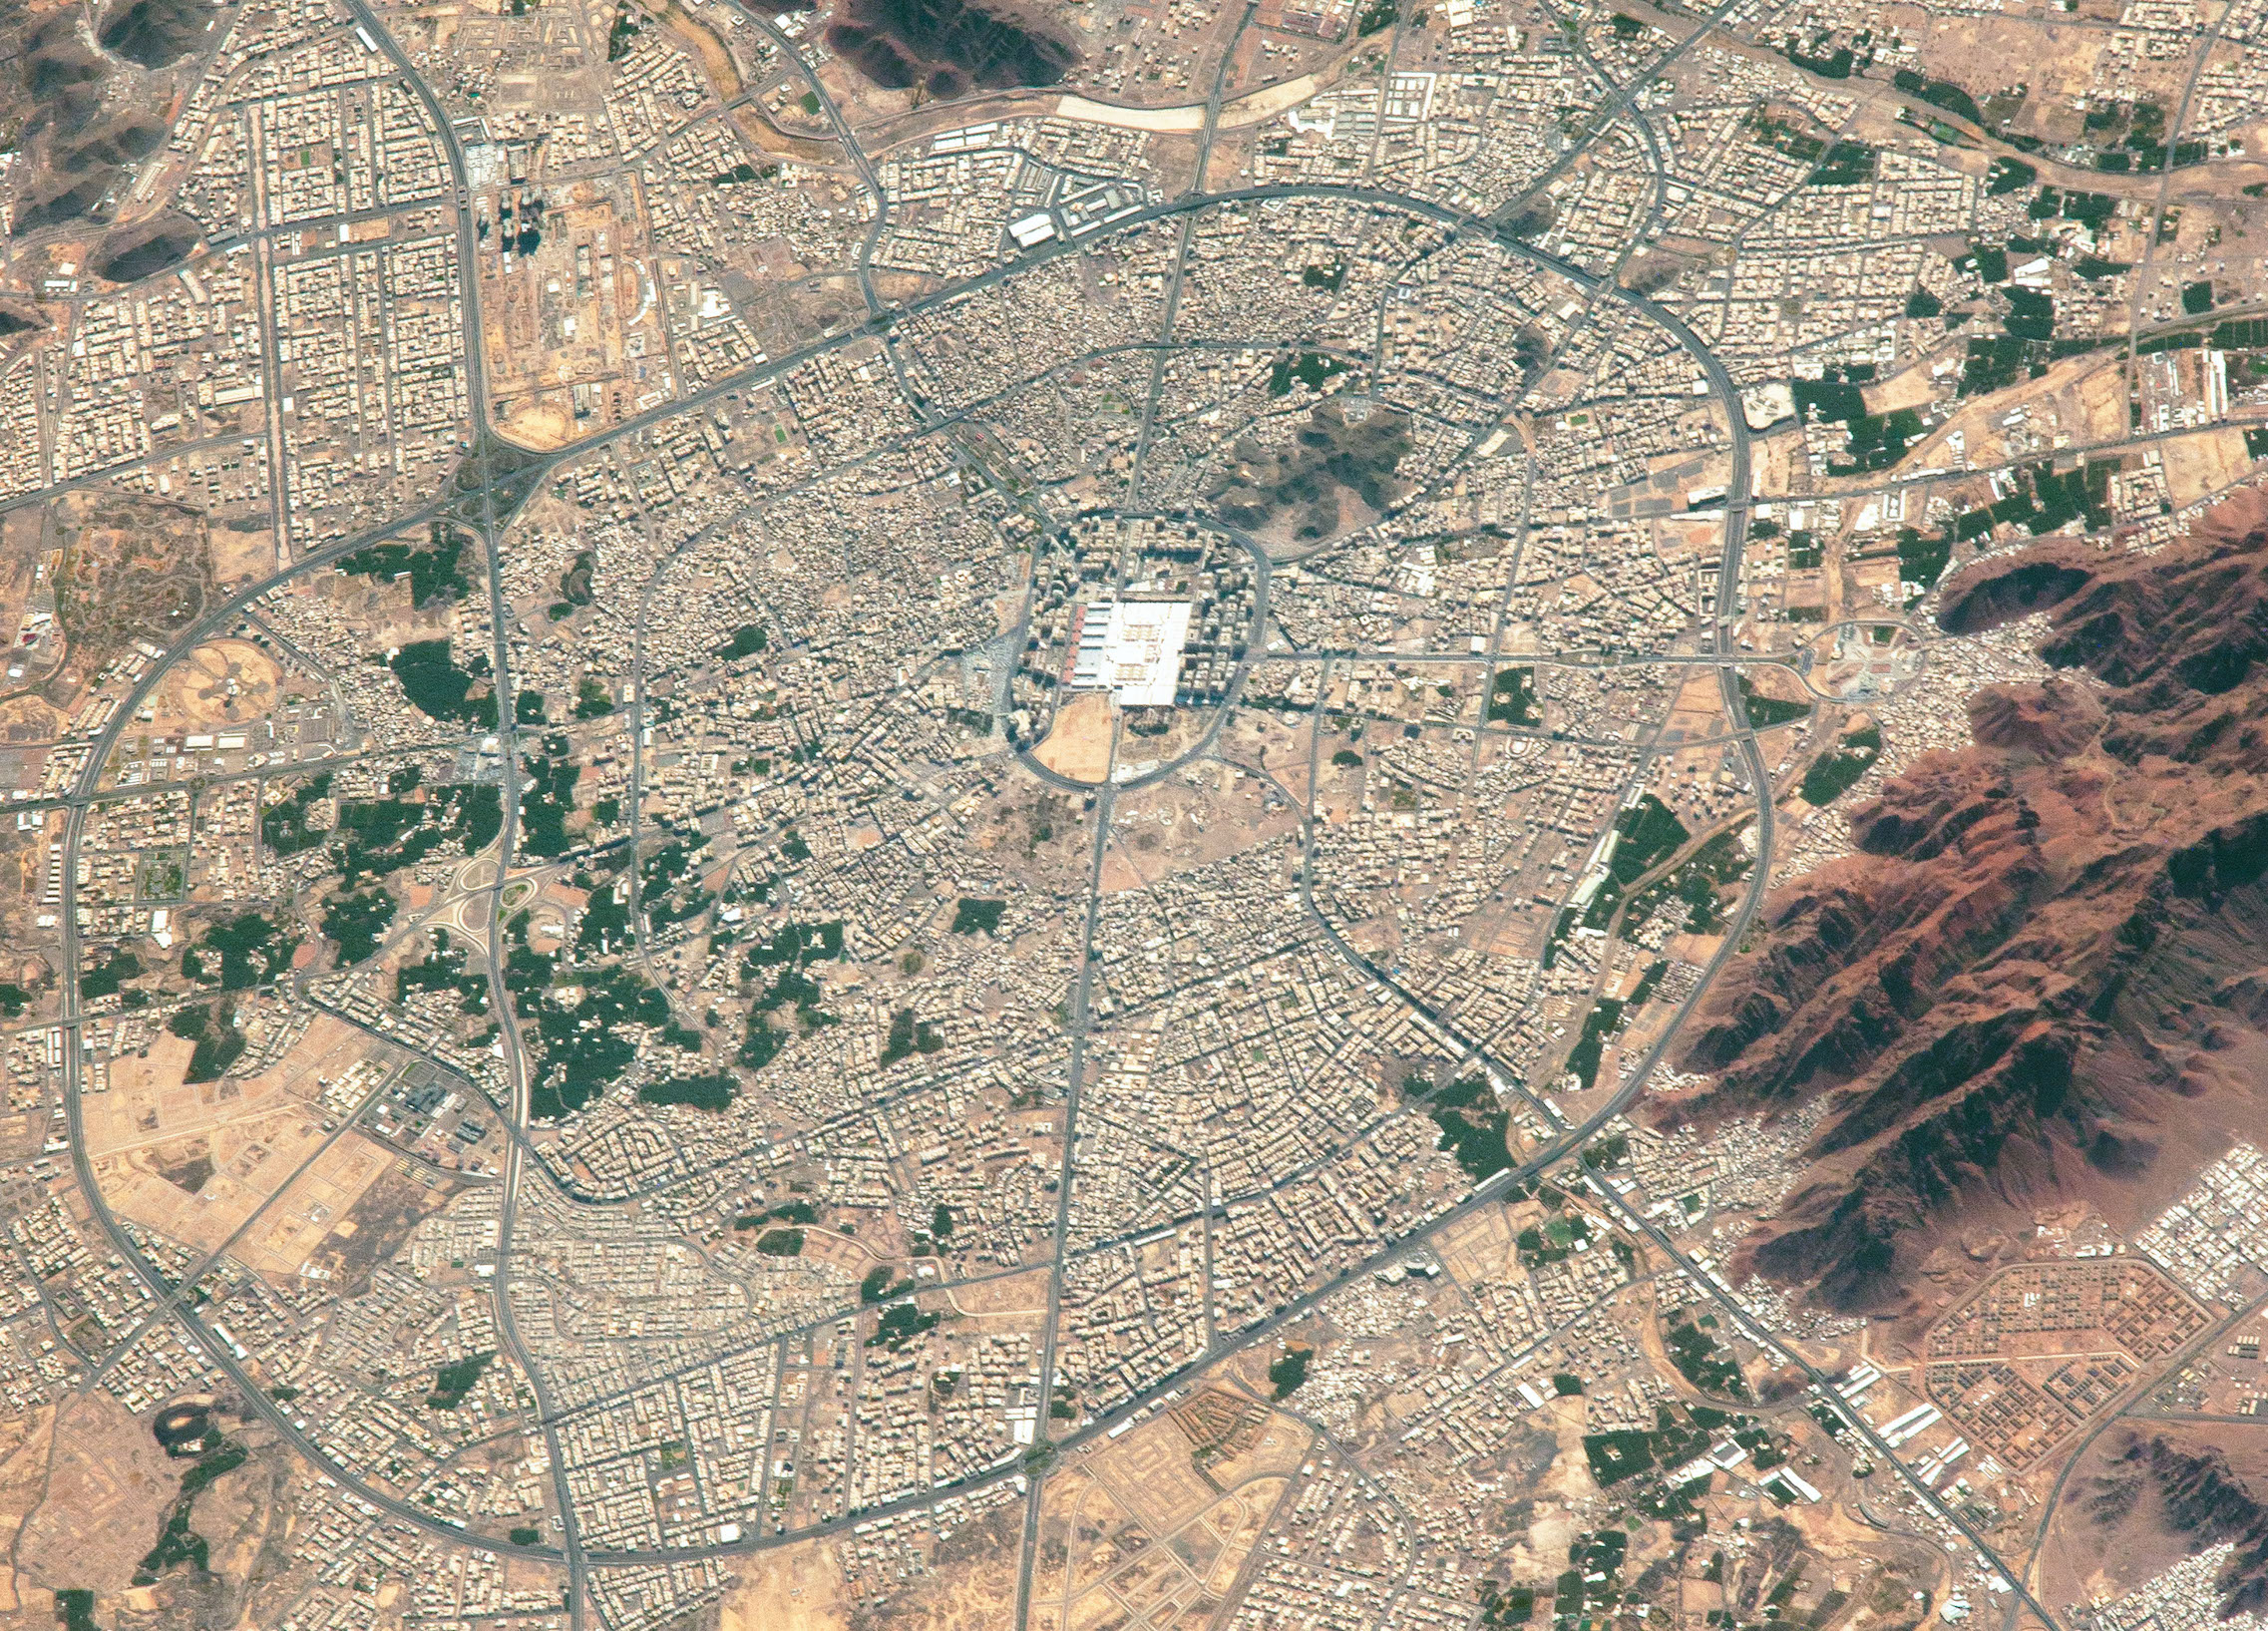 Today's Image of the Day comes from the NASA Earth Observatory and features a look at the city of Medina in western Saudi Arabia.